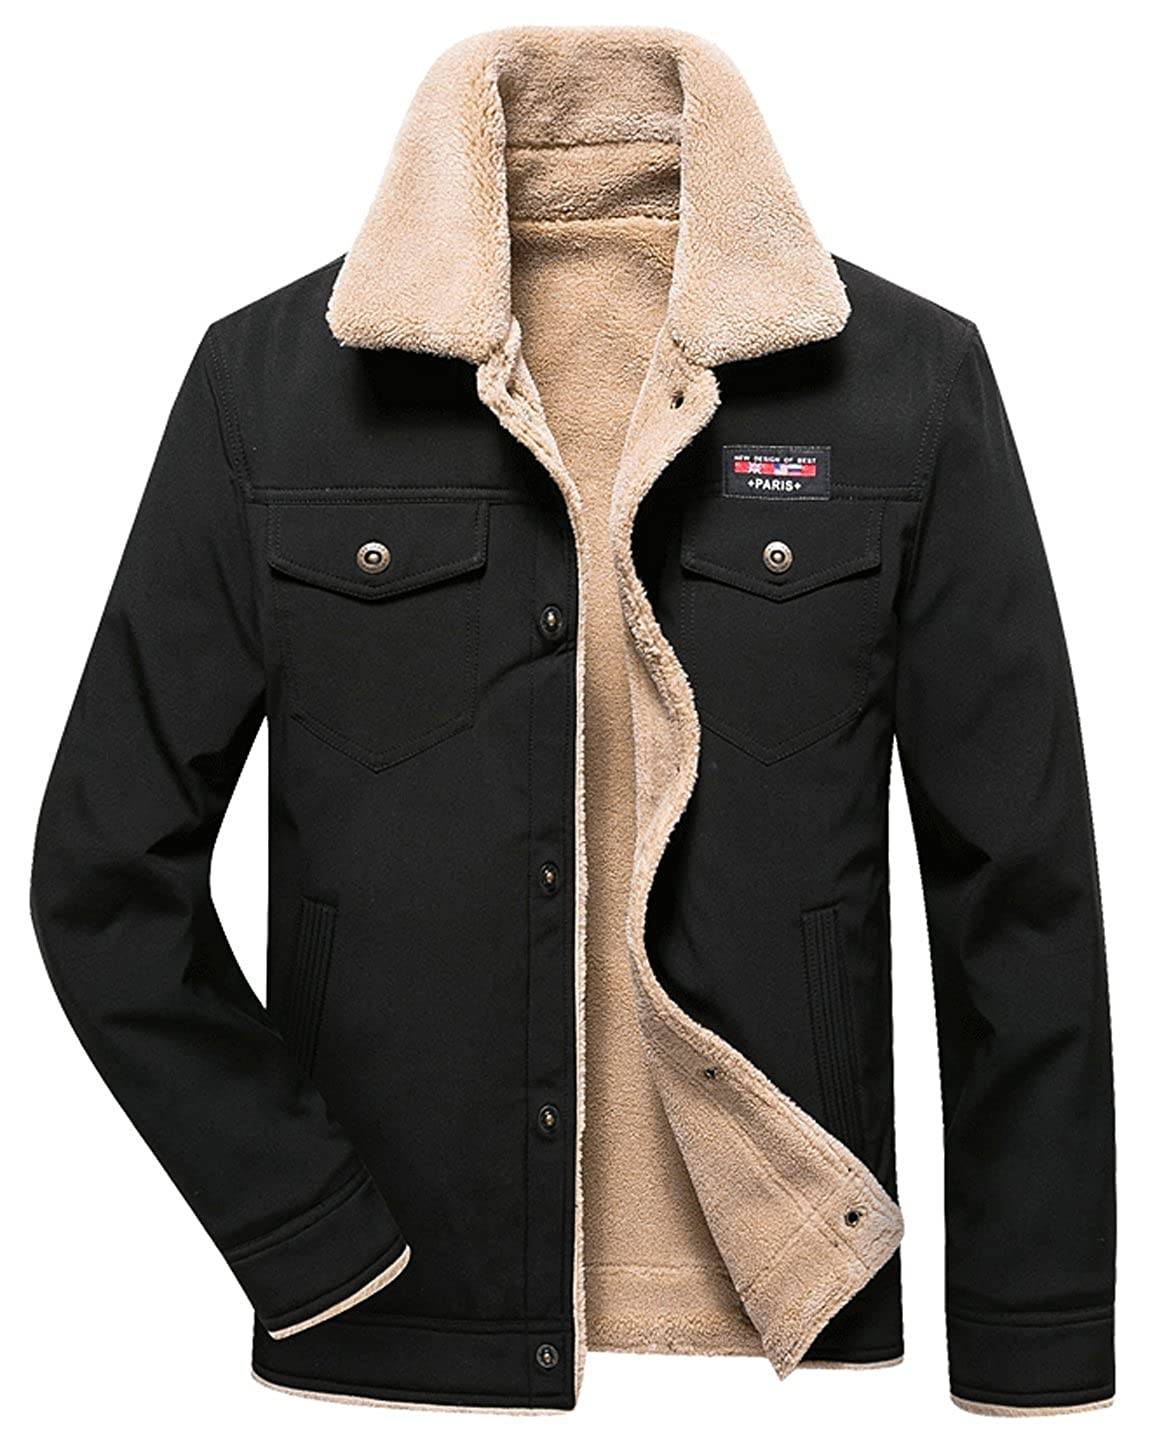 HOWON Mens Casual Sherpa Fleece Lined Jacket Warm Coat with Fur Collar